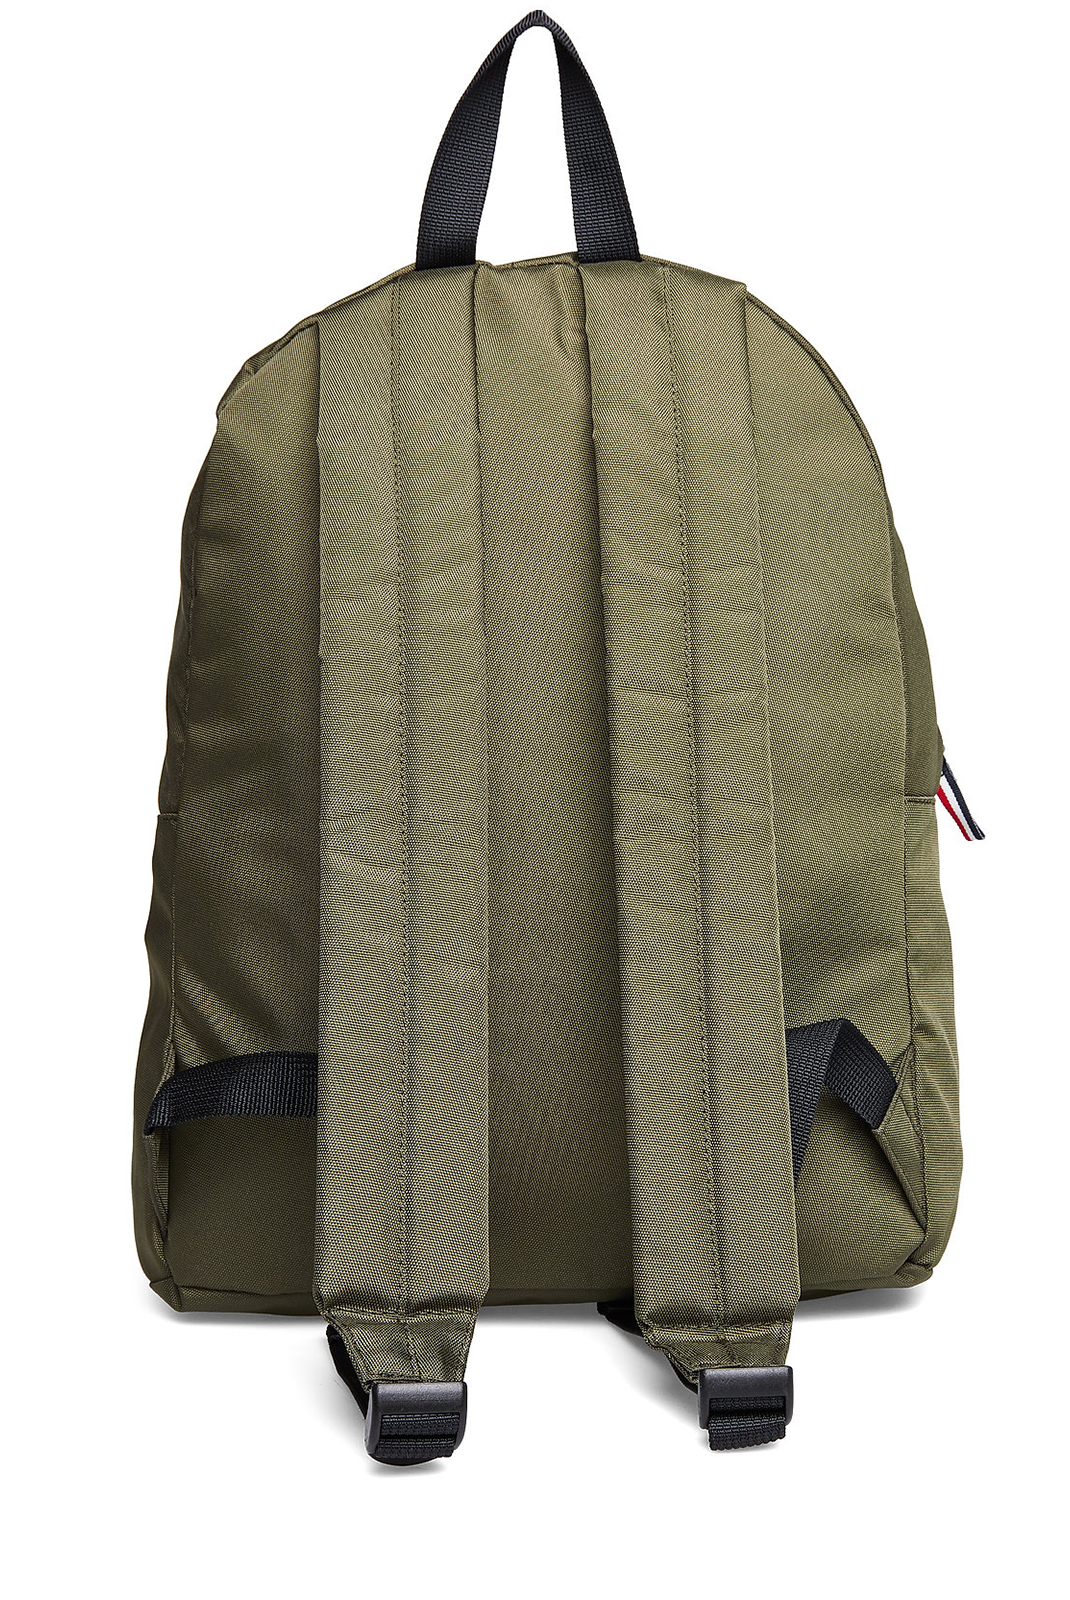 Sacs à dos  Tommy Jeans AM0AM04933355 355 Olive Night